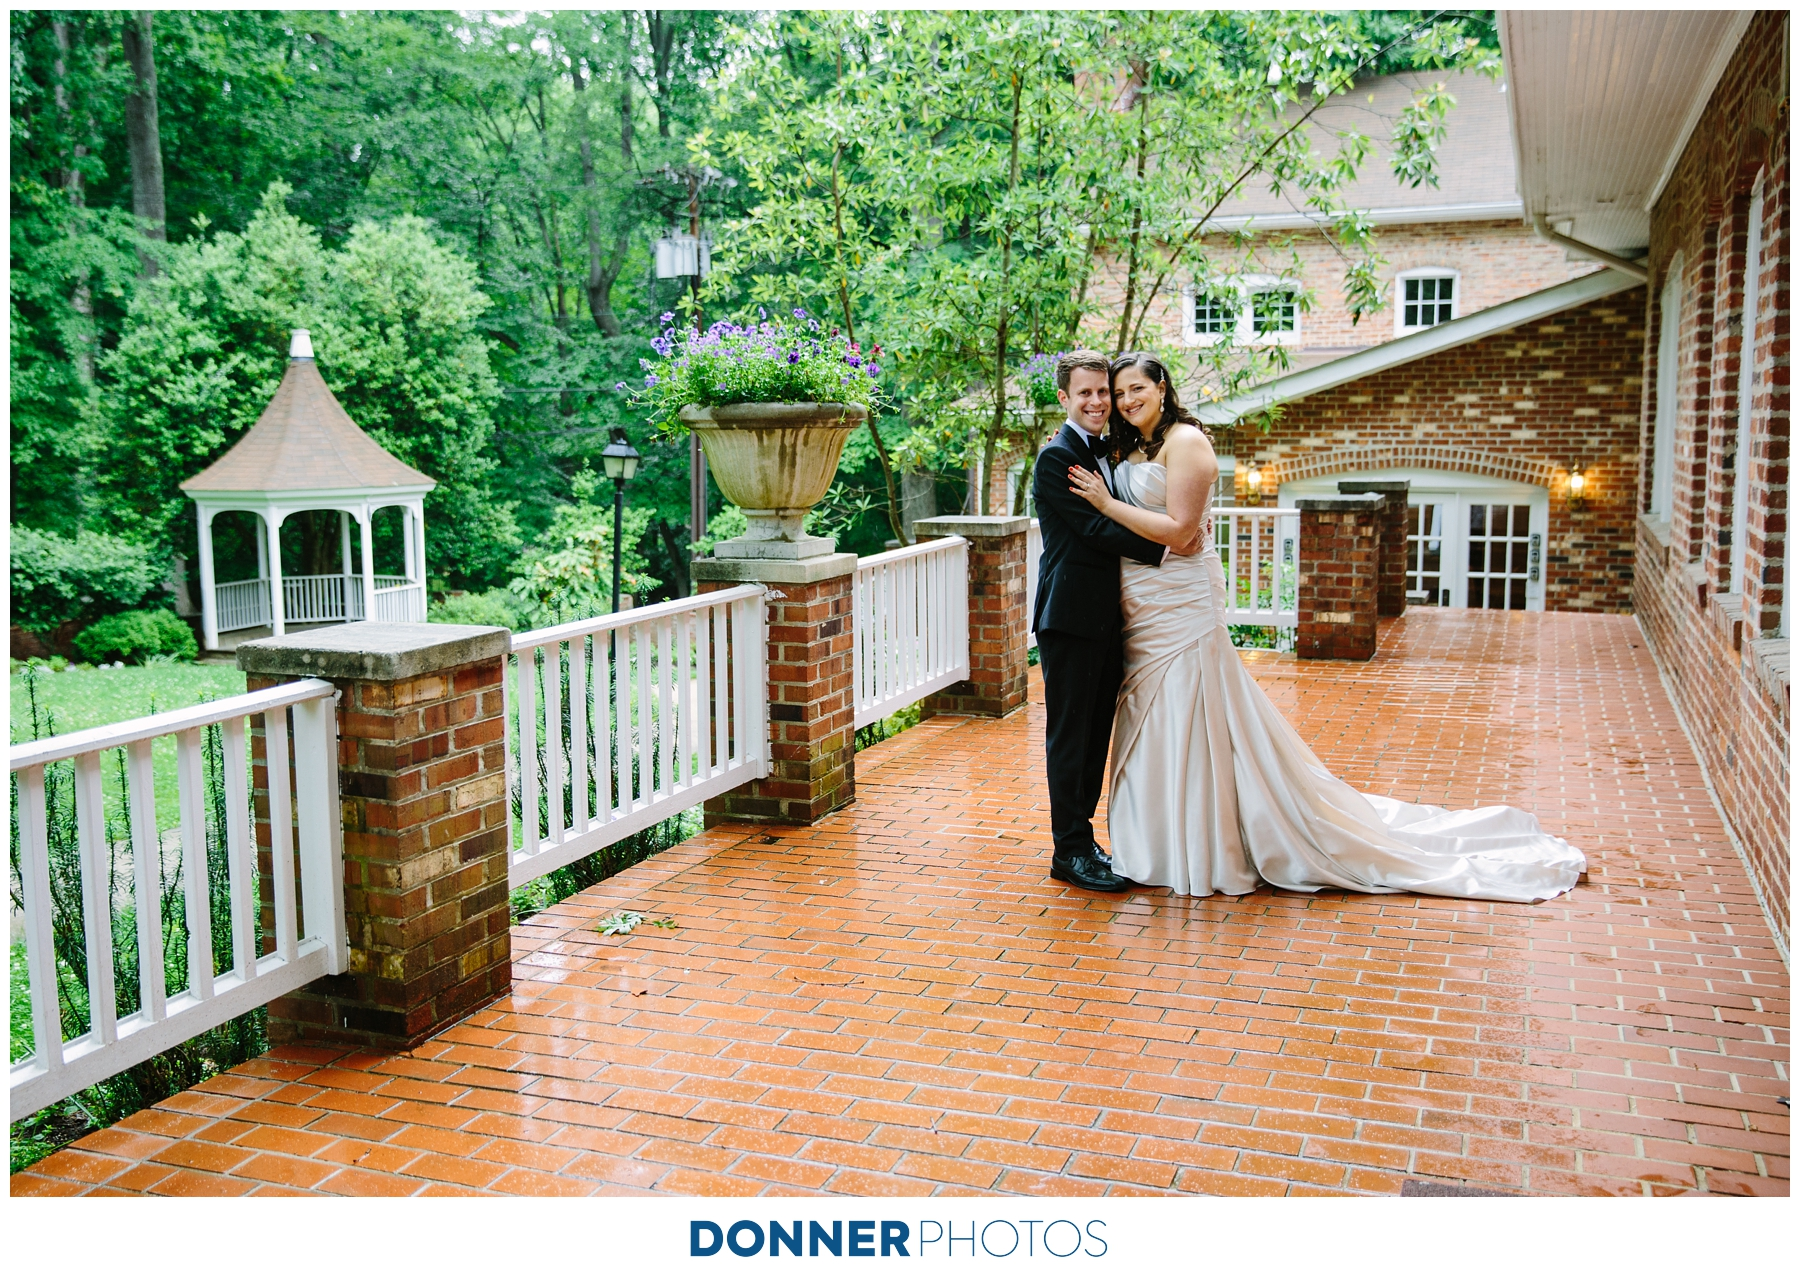 POTOMAC MD WEDDING: JOSH & JORDY